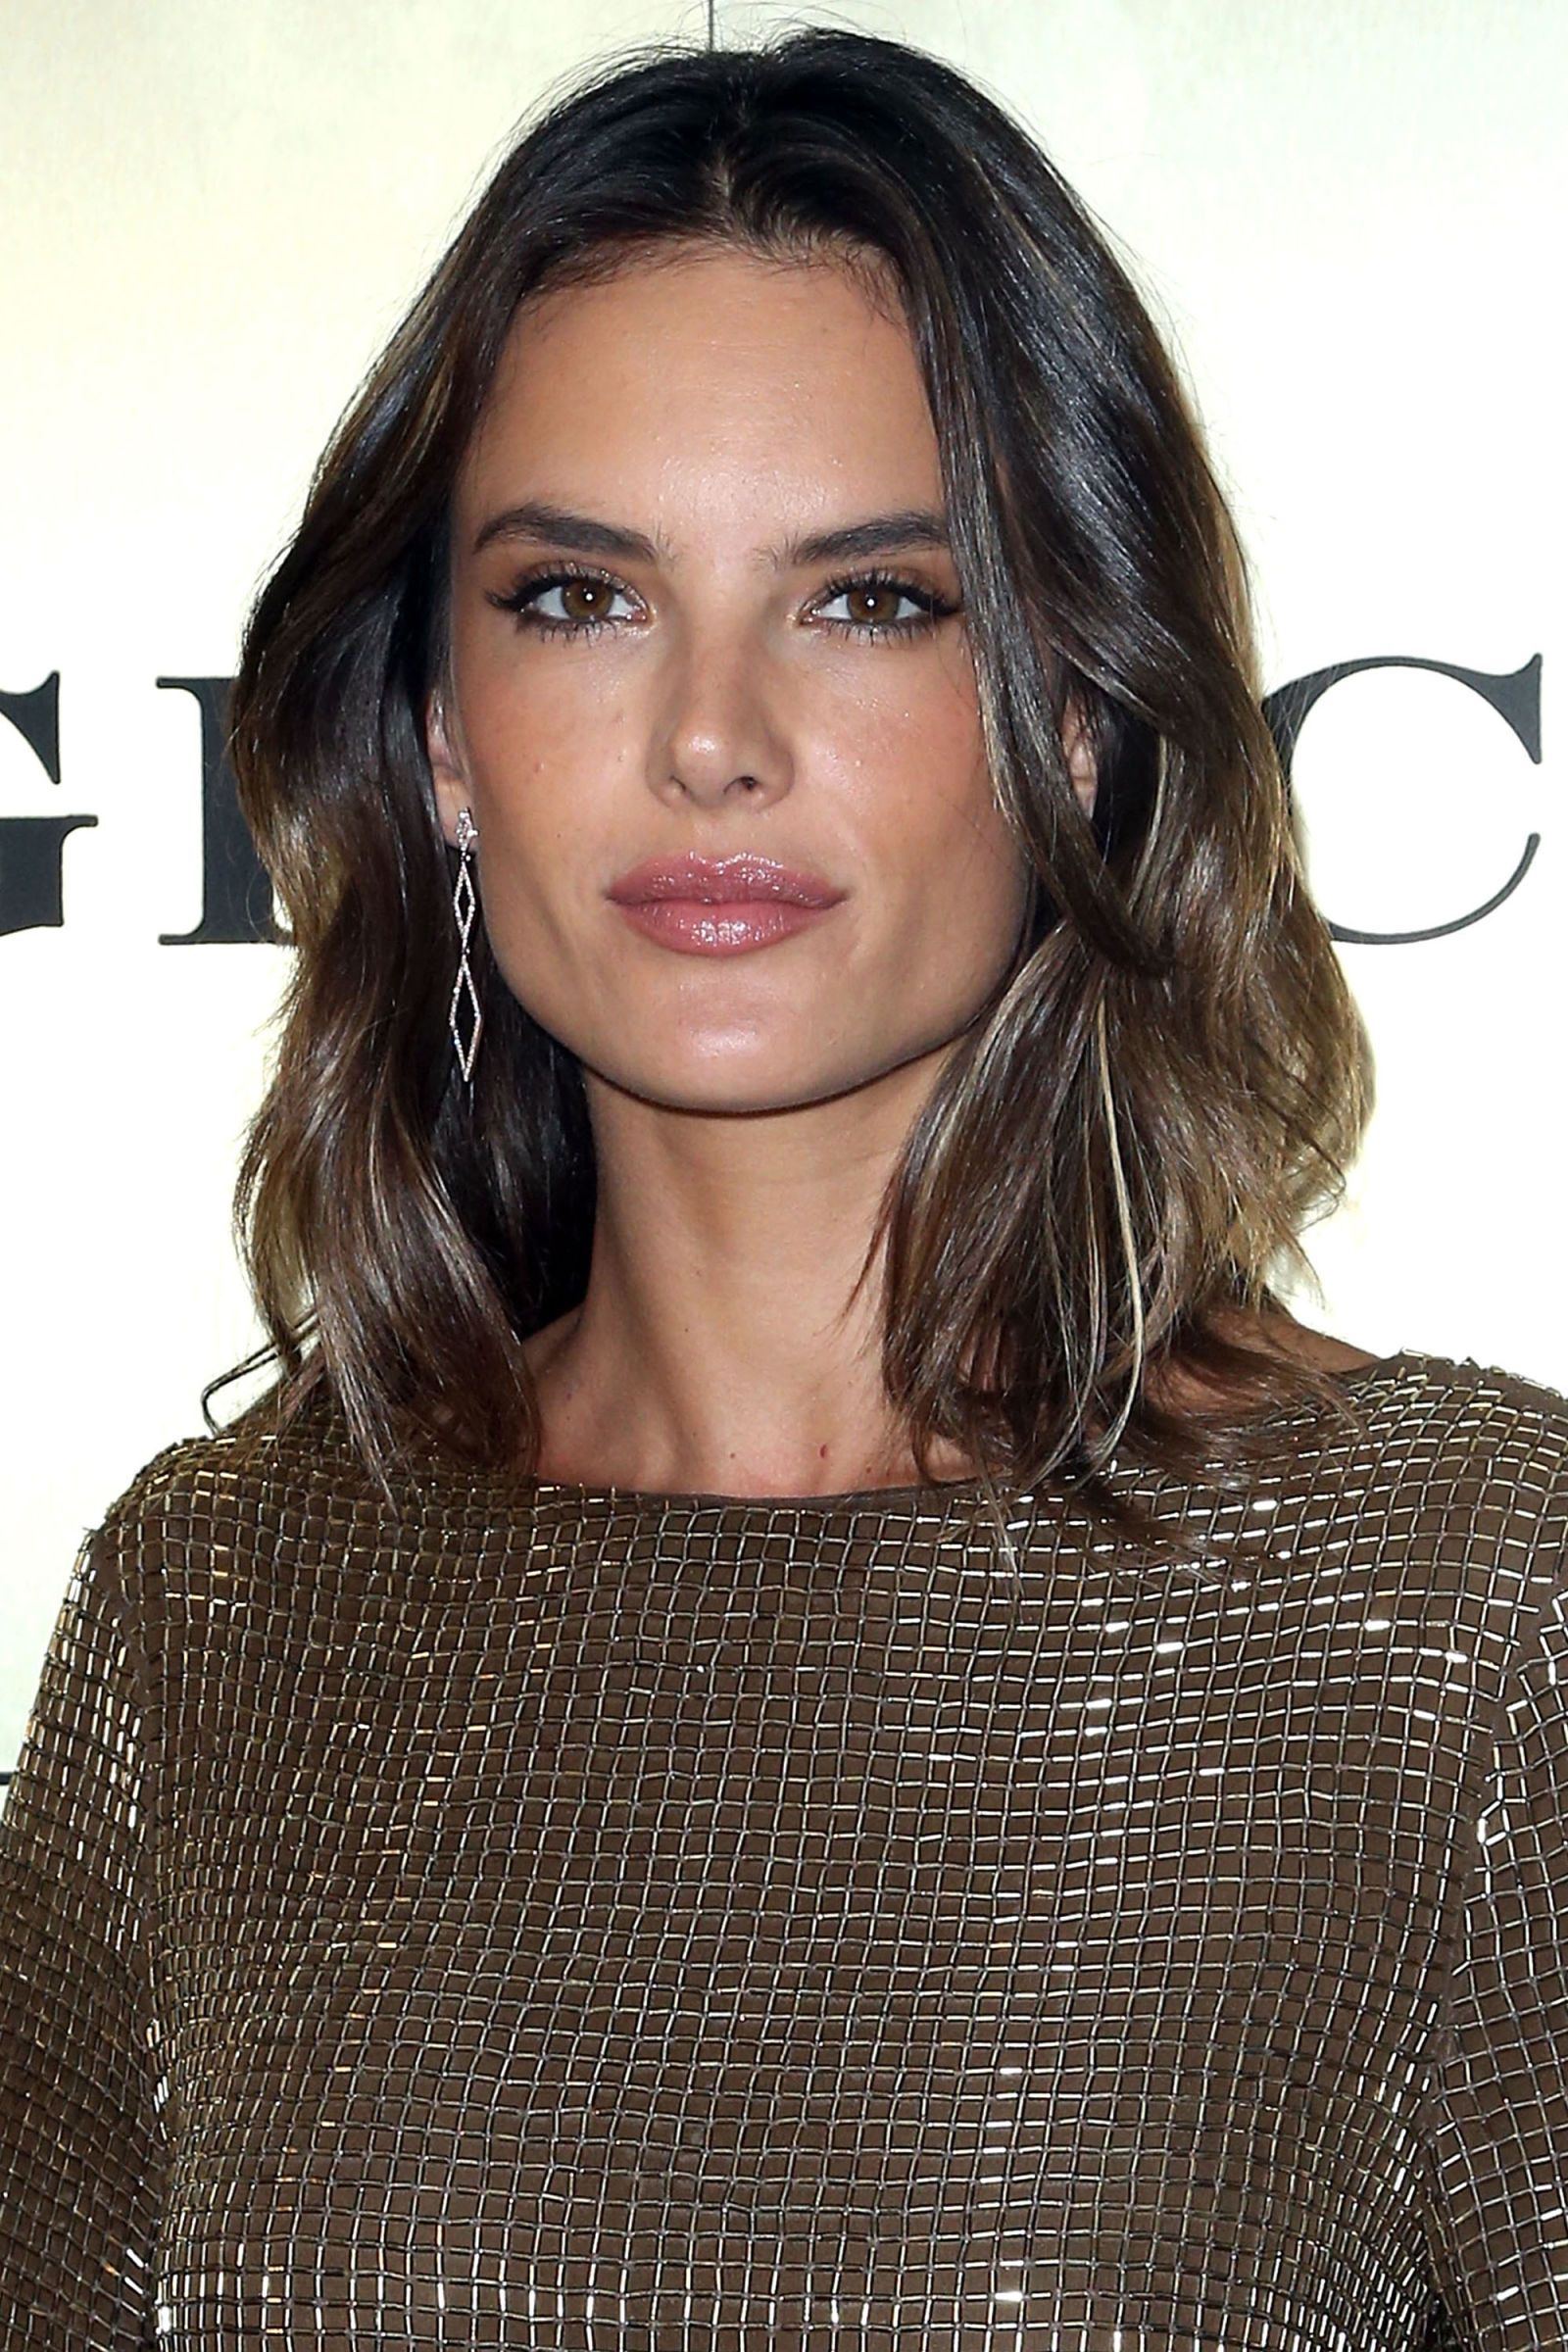 Ambrosio Alessandra spring hairstyle pictures